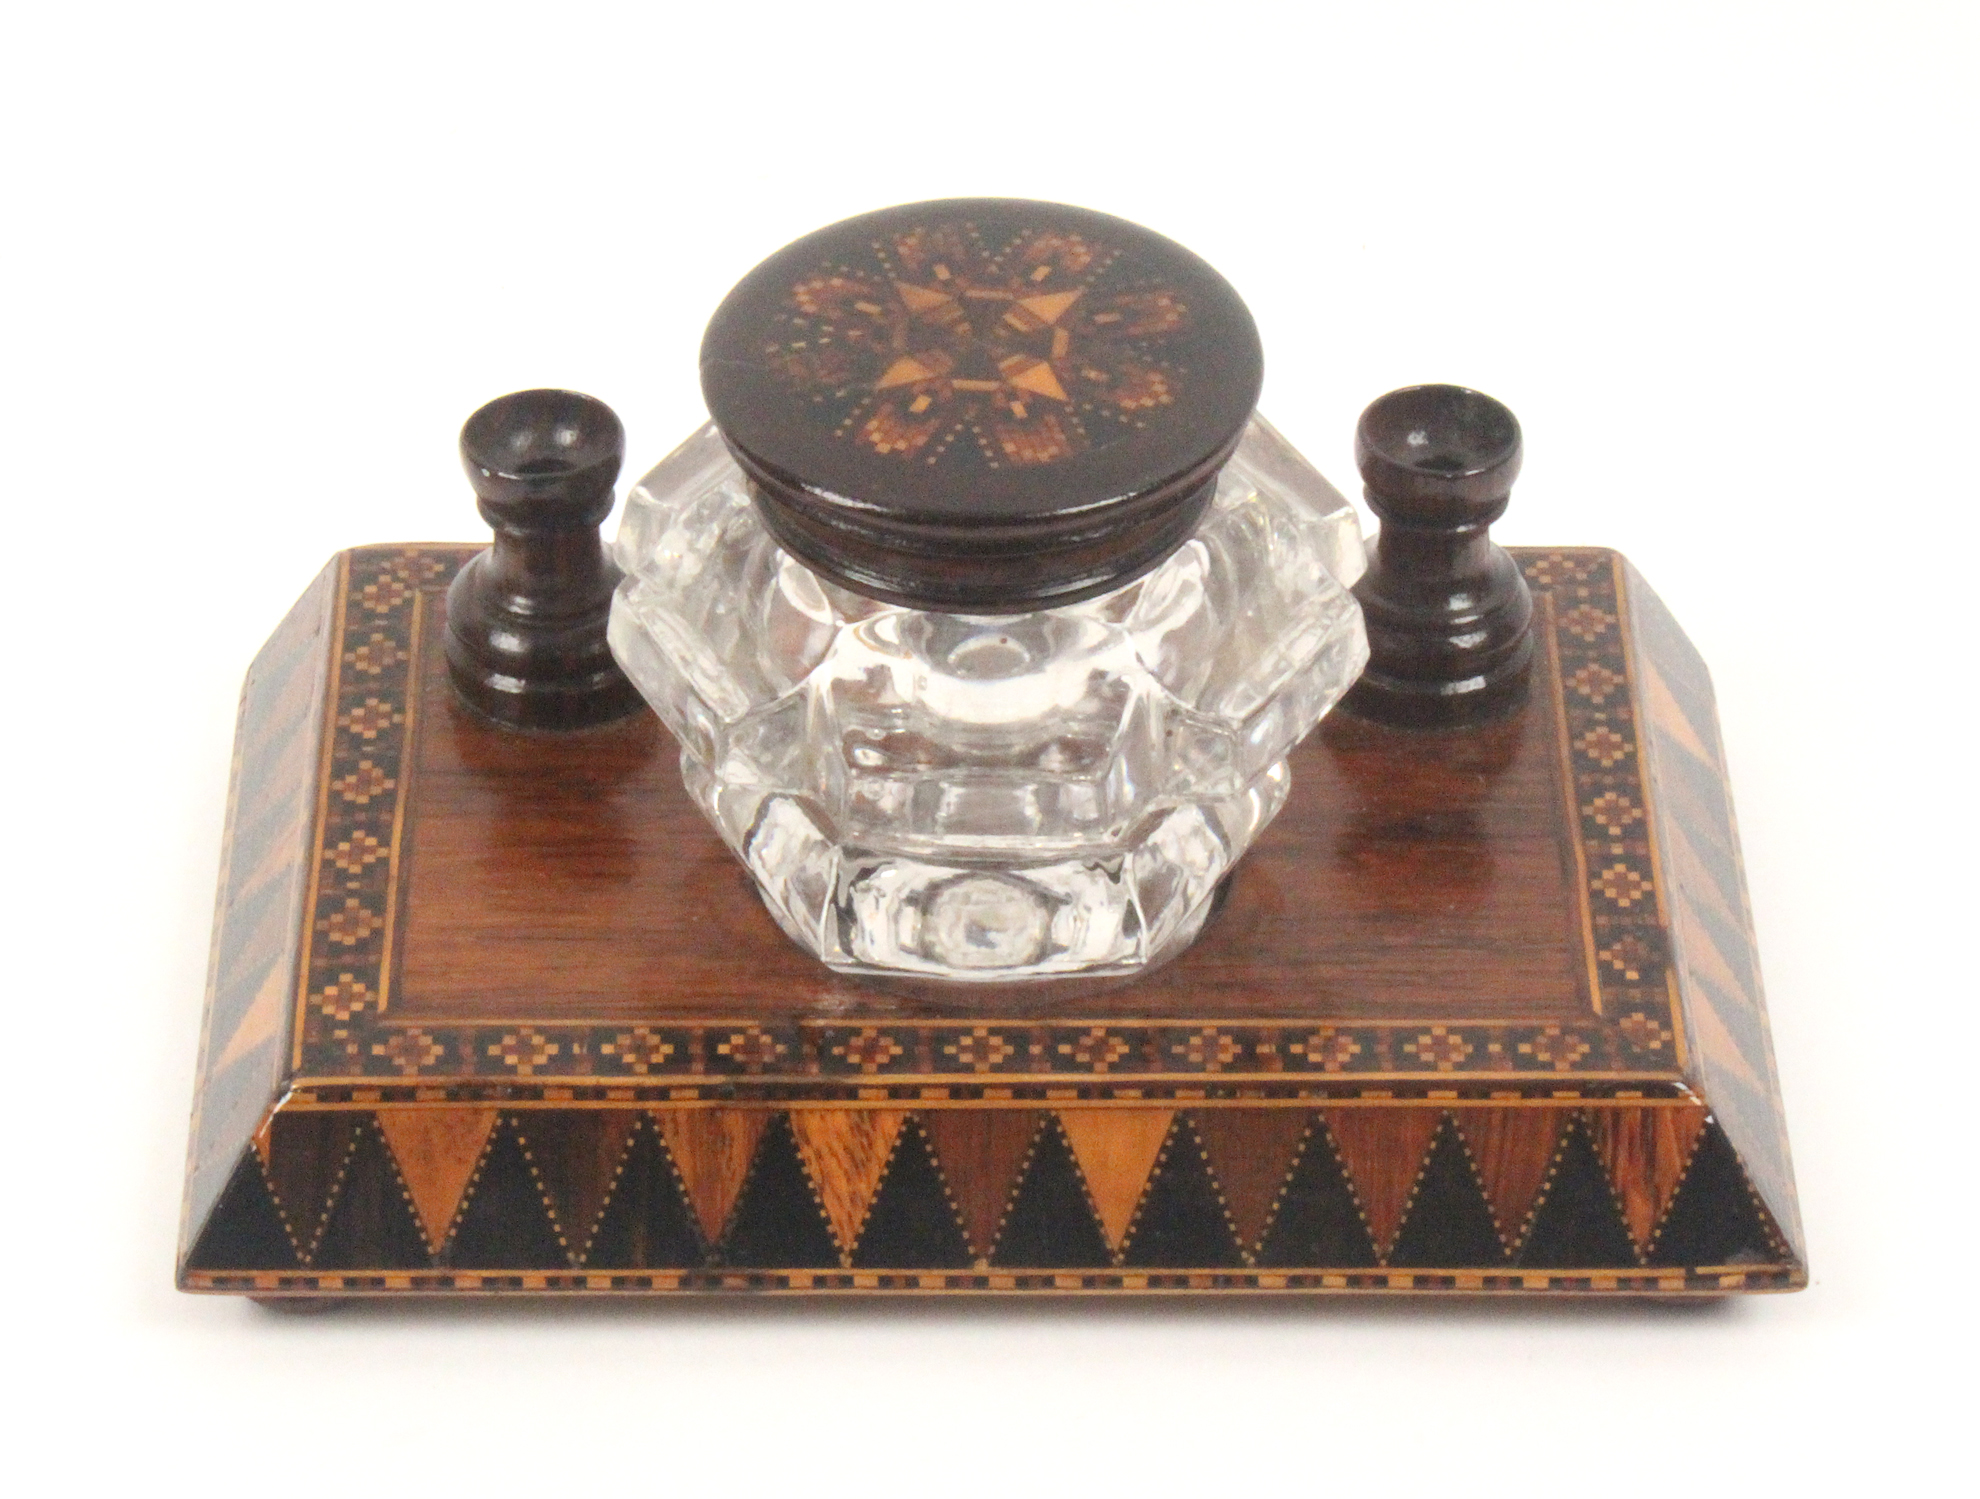 Lot 39 - A Tunbridge ware rosewood ink stand, the rectangular base on four bun feet with a canted border in